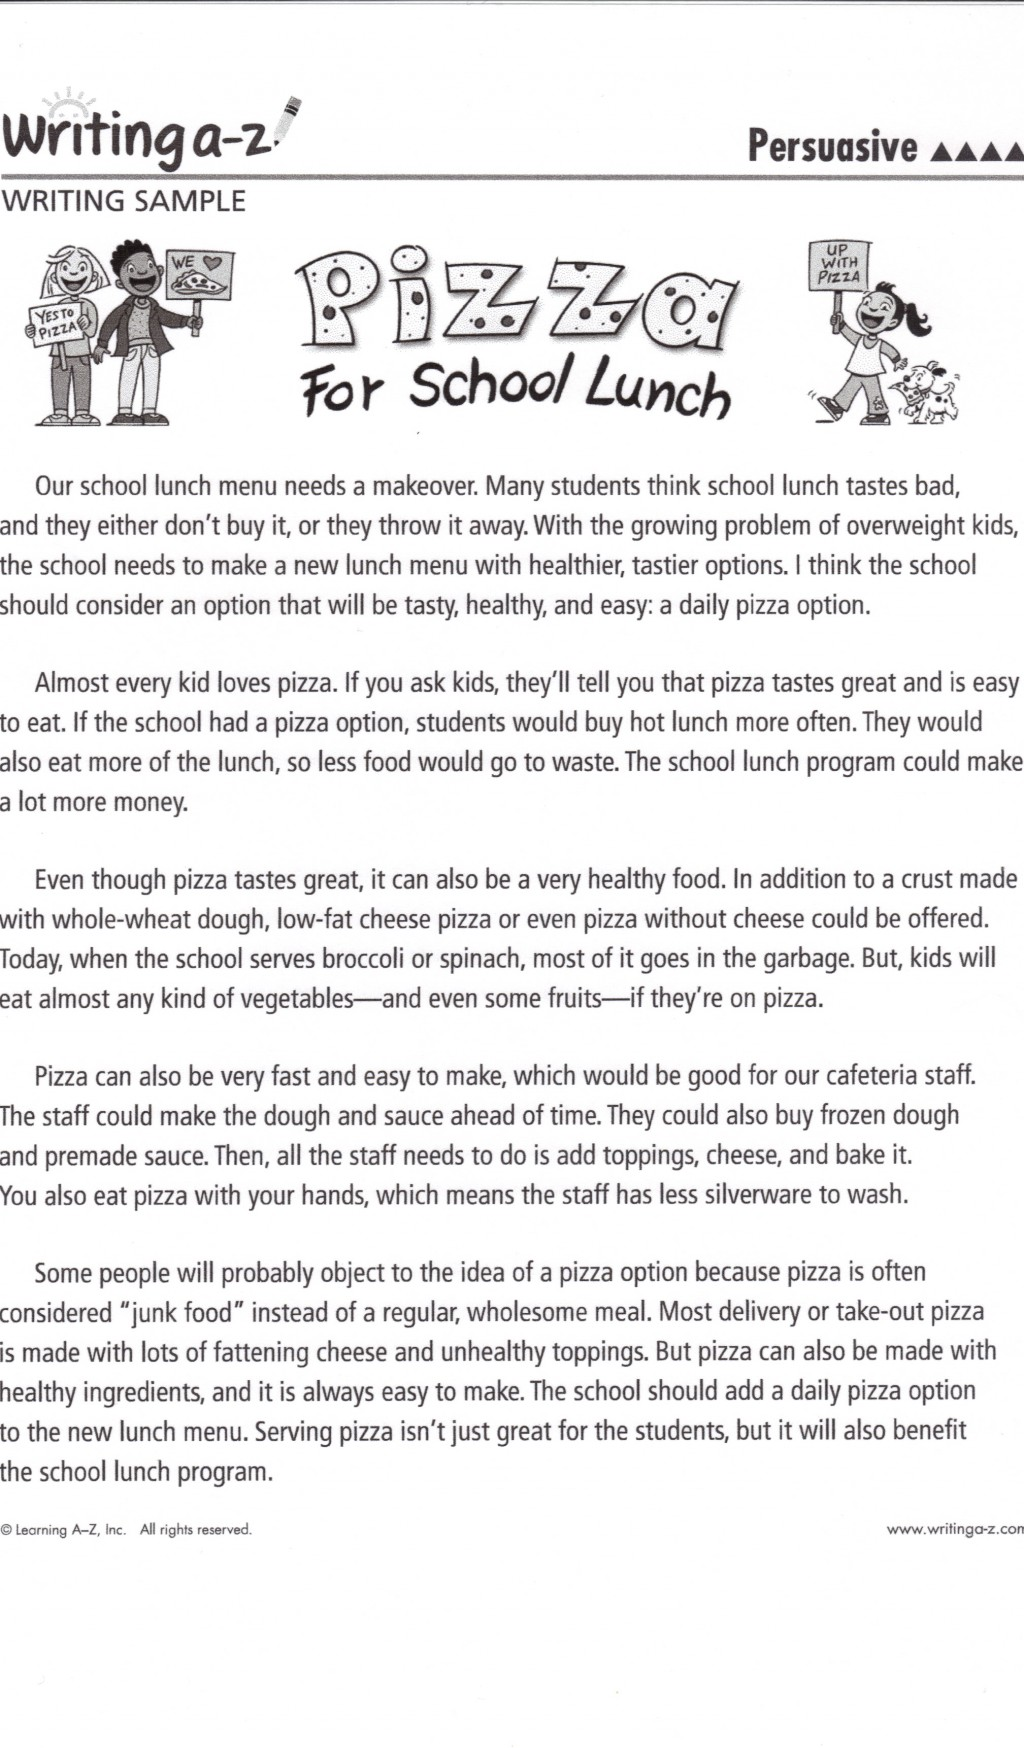 004 Essay Example 20102093b343b4120pm20fluent Opinion About Fast Unbelievable Food Restaurants Is A Good Alternative To Cooking For Yourself Large